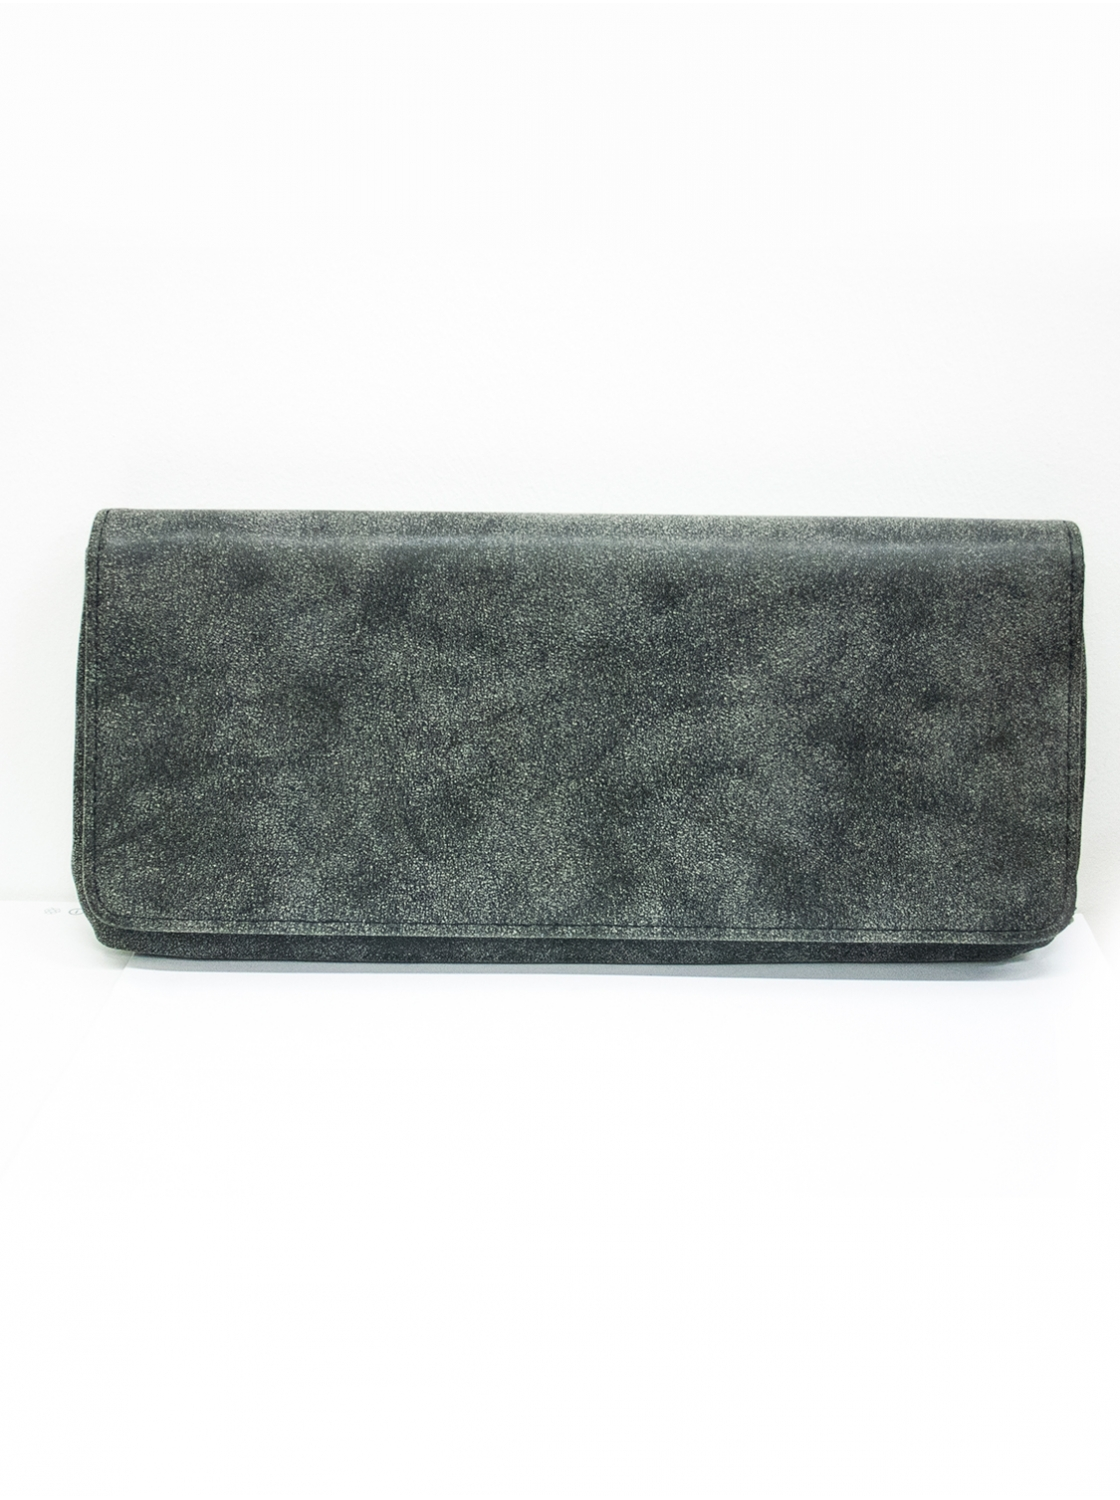 Pochette Simple Grise